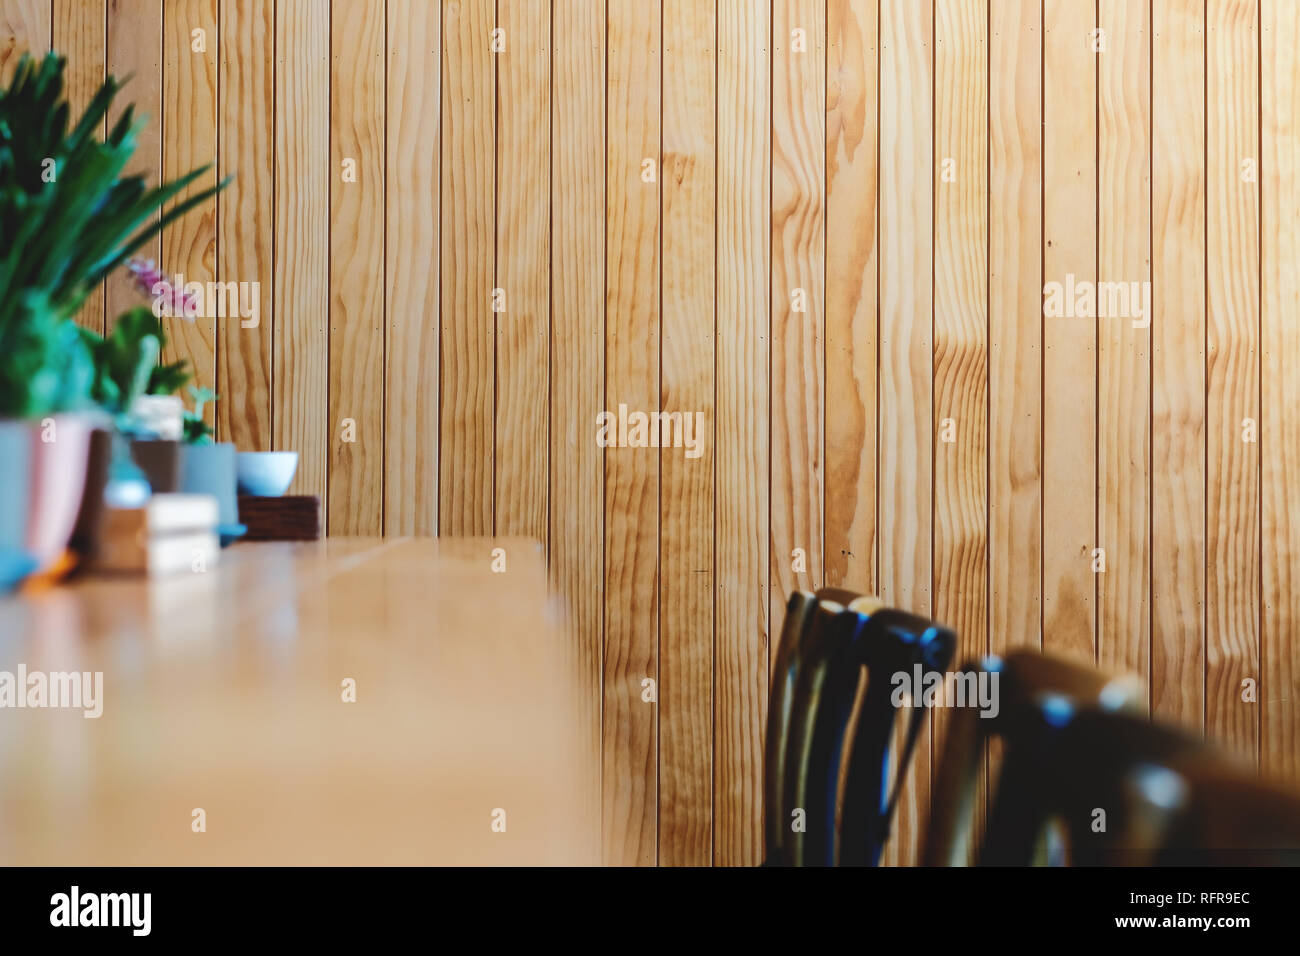 Wooden Wall in Restaurant and Cafe, Contemporary Interior Design. Natural Daylight - Stock Image